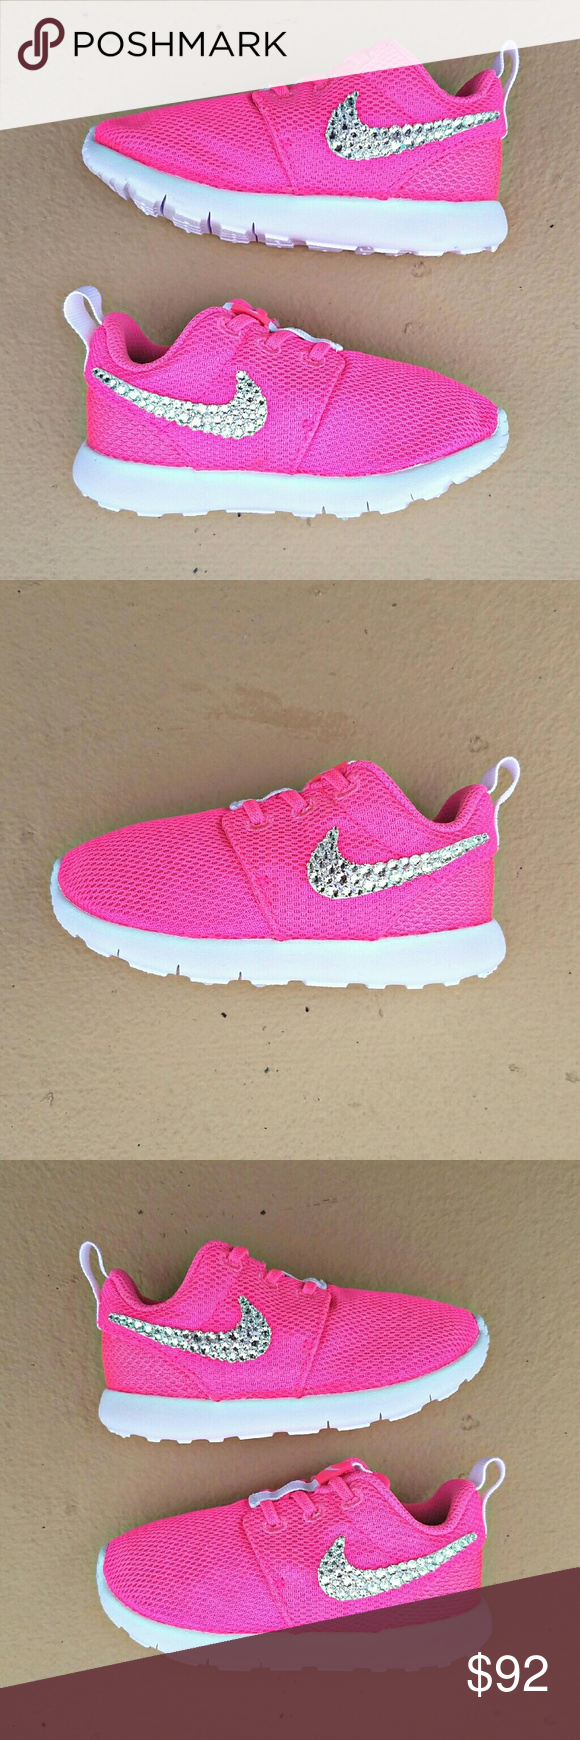 SWAROVSKI Bling Girls' Preschool Kids Nike Roshe Kids' Preschool Nike Roshe  Embellished with genuine Swarovski XIRIUS Rose 2088 Crystals  Swarovski's newest and most revolutionary crystals, the XIRIUS collection takes one step closer to the diamond. With extraordinary brilliance & shine, these crystals go unmatched by generic rhinestones  Crystals are applied by hand with industrial-strength adhesive. Embellishment is permanent, but extra crystals are provided just in case  Find more colors…